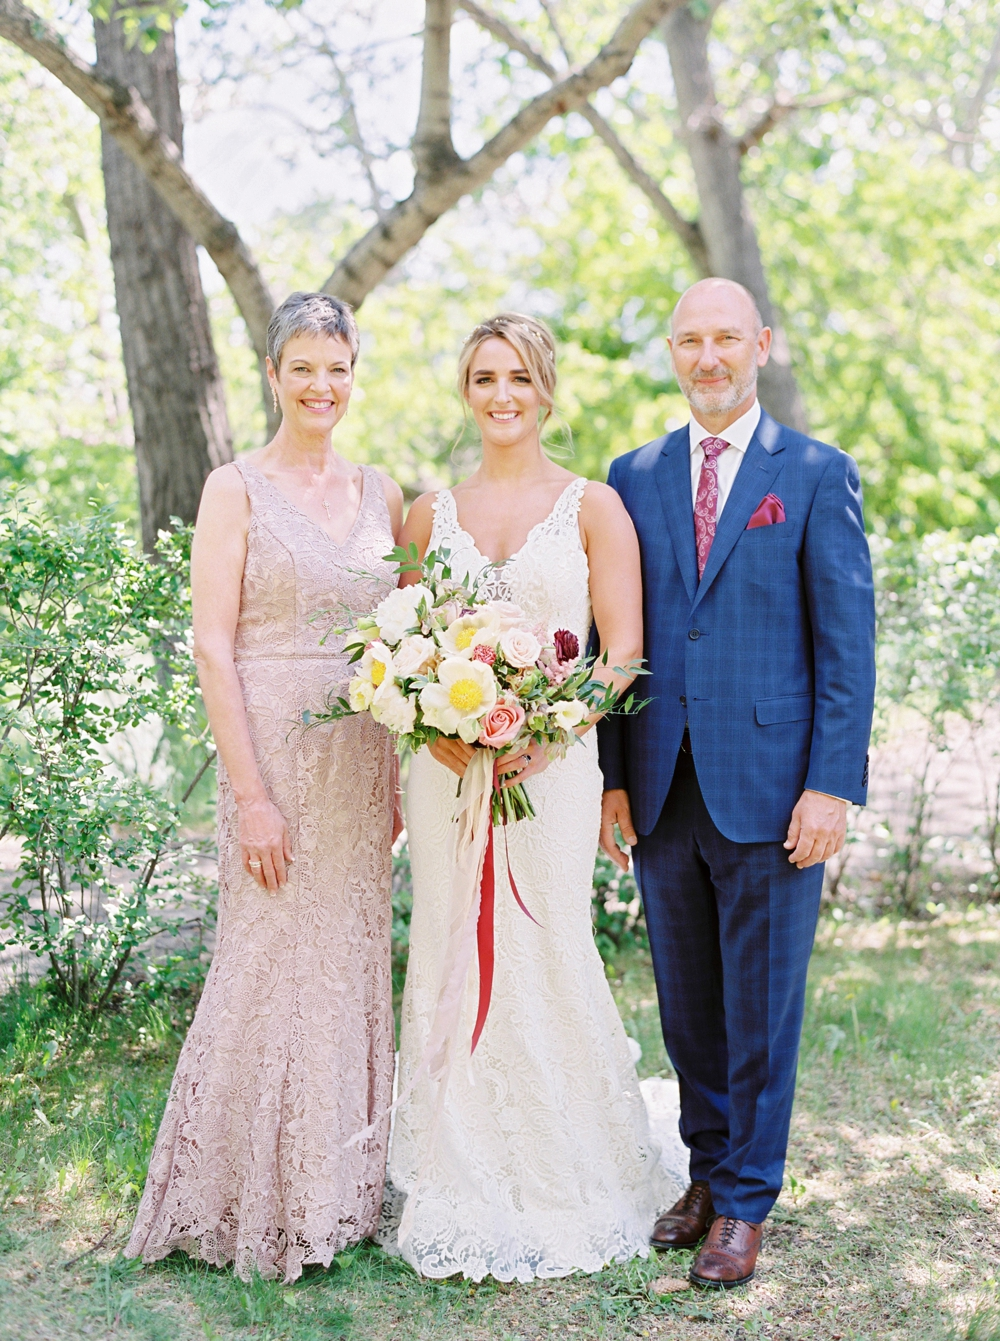 Calgary Wedding Photographers | The Lake House Wedding | Calgary Wedding photography Beltline | Justine Milton Fine Art Film Photographer